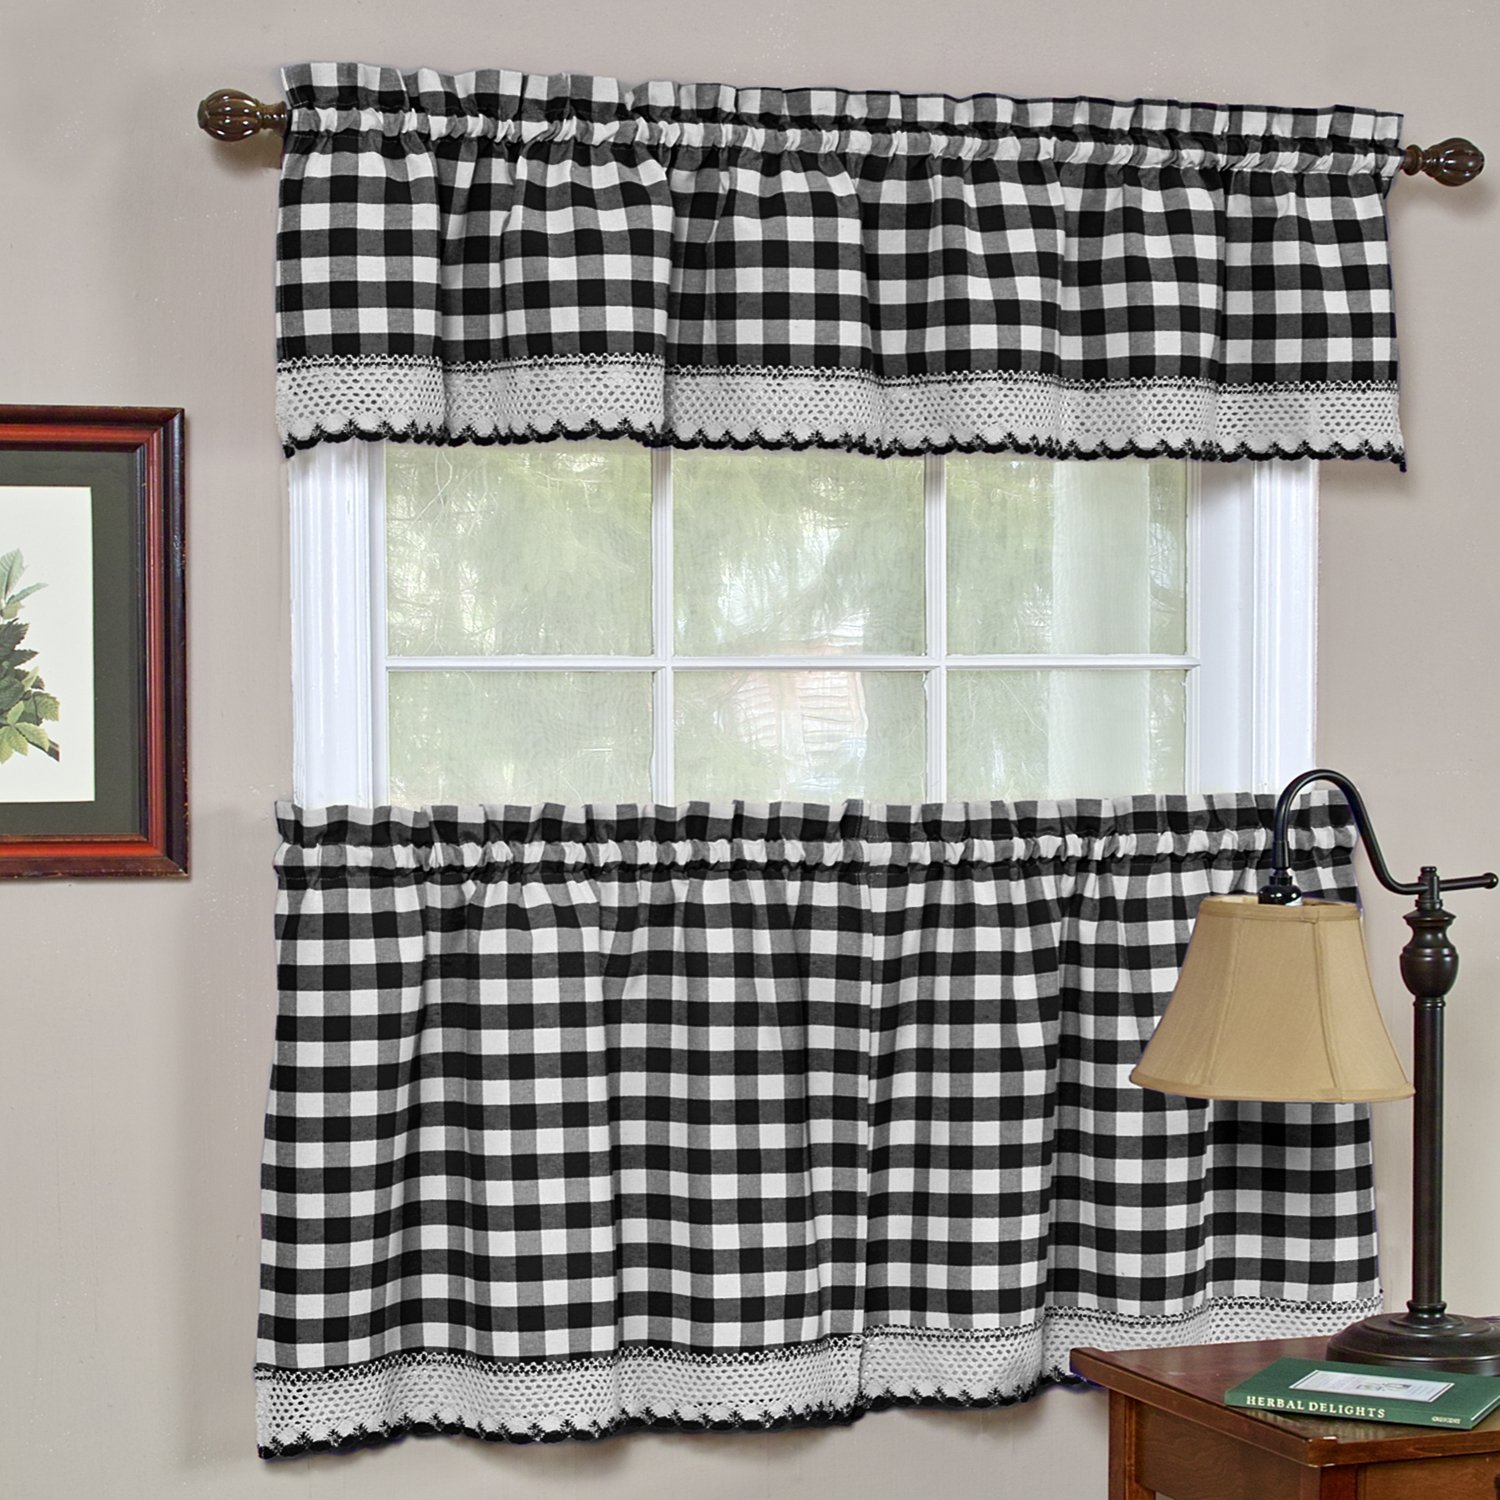 Designer Home Window Curtain Tier Pair Pack Set Checked Plaid Gingham Kitchen Panel 58 X 36